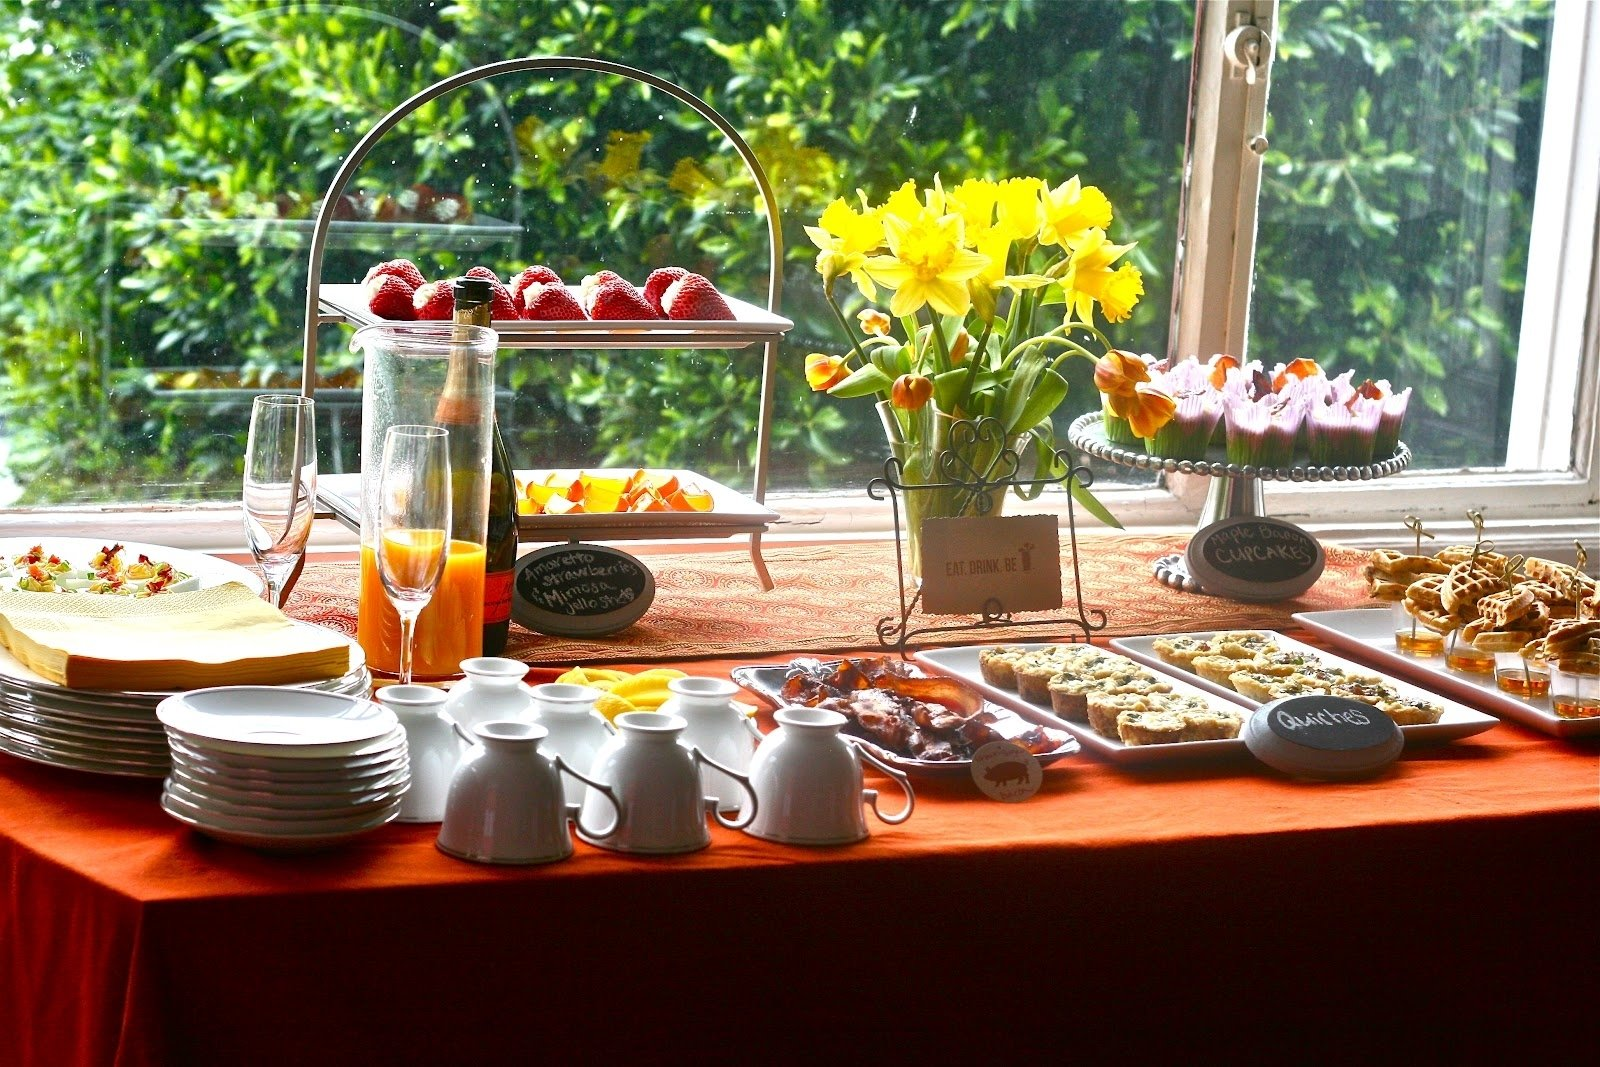 10 Gorgeous Brunch Ideas For Bridal Shower e is for eat drink be bloody mary bacon bridal shower 2020